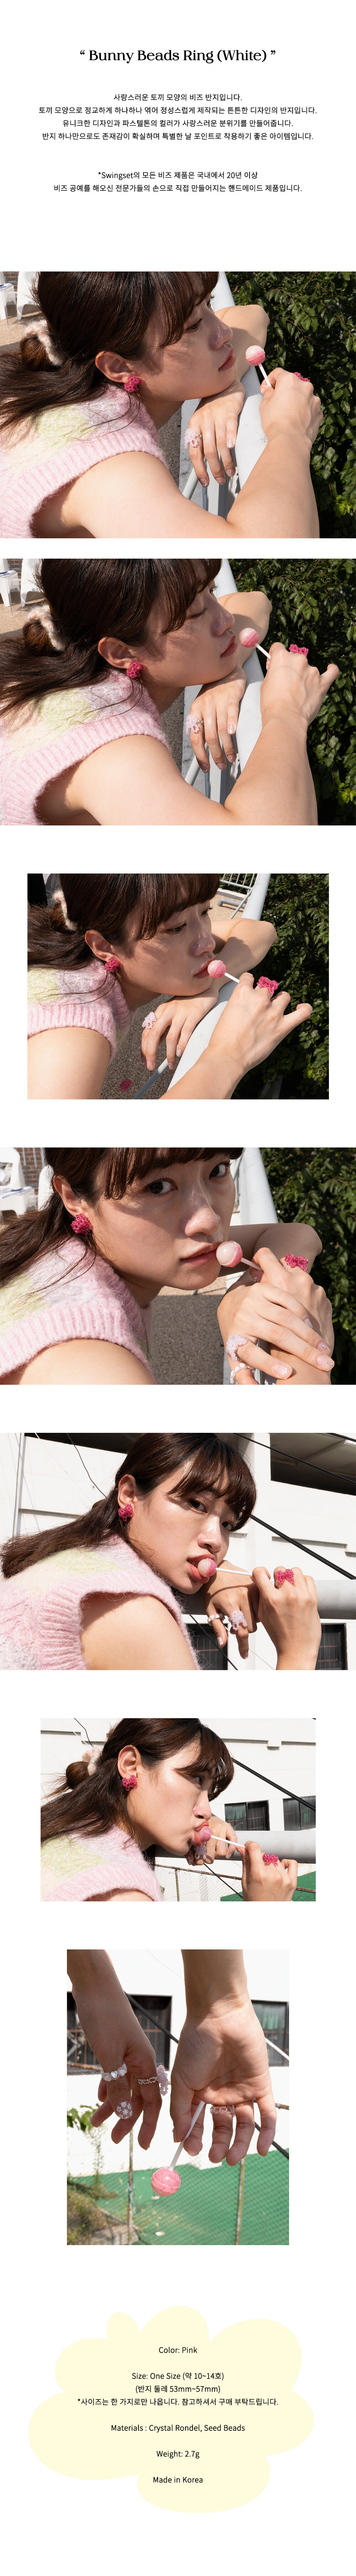 Bunny Beads Ring (Pink)